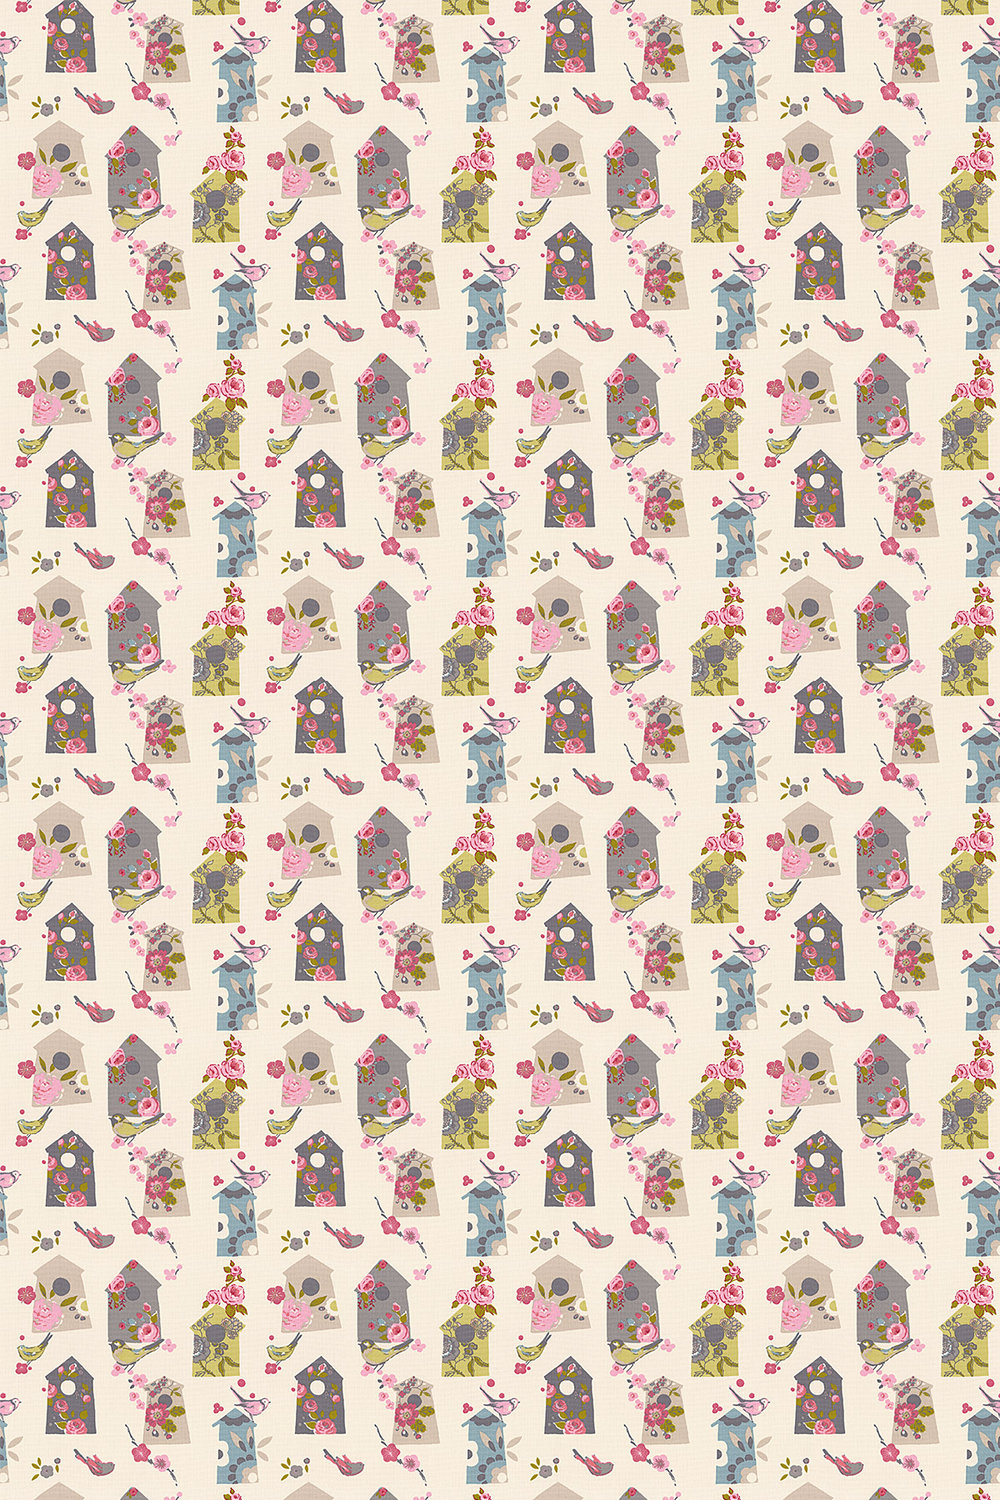 Birdhouse Fabric - Natural - by Studio G